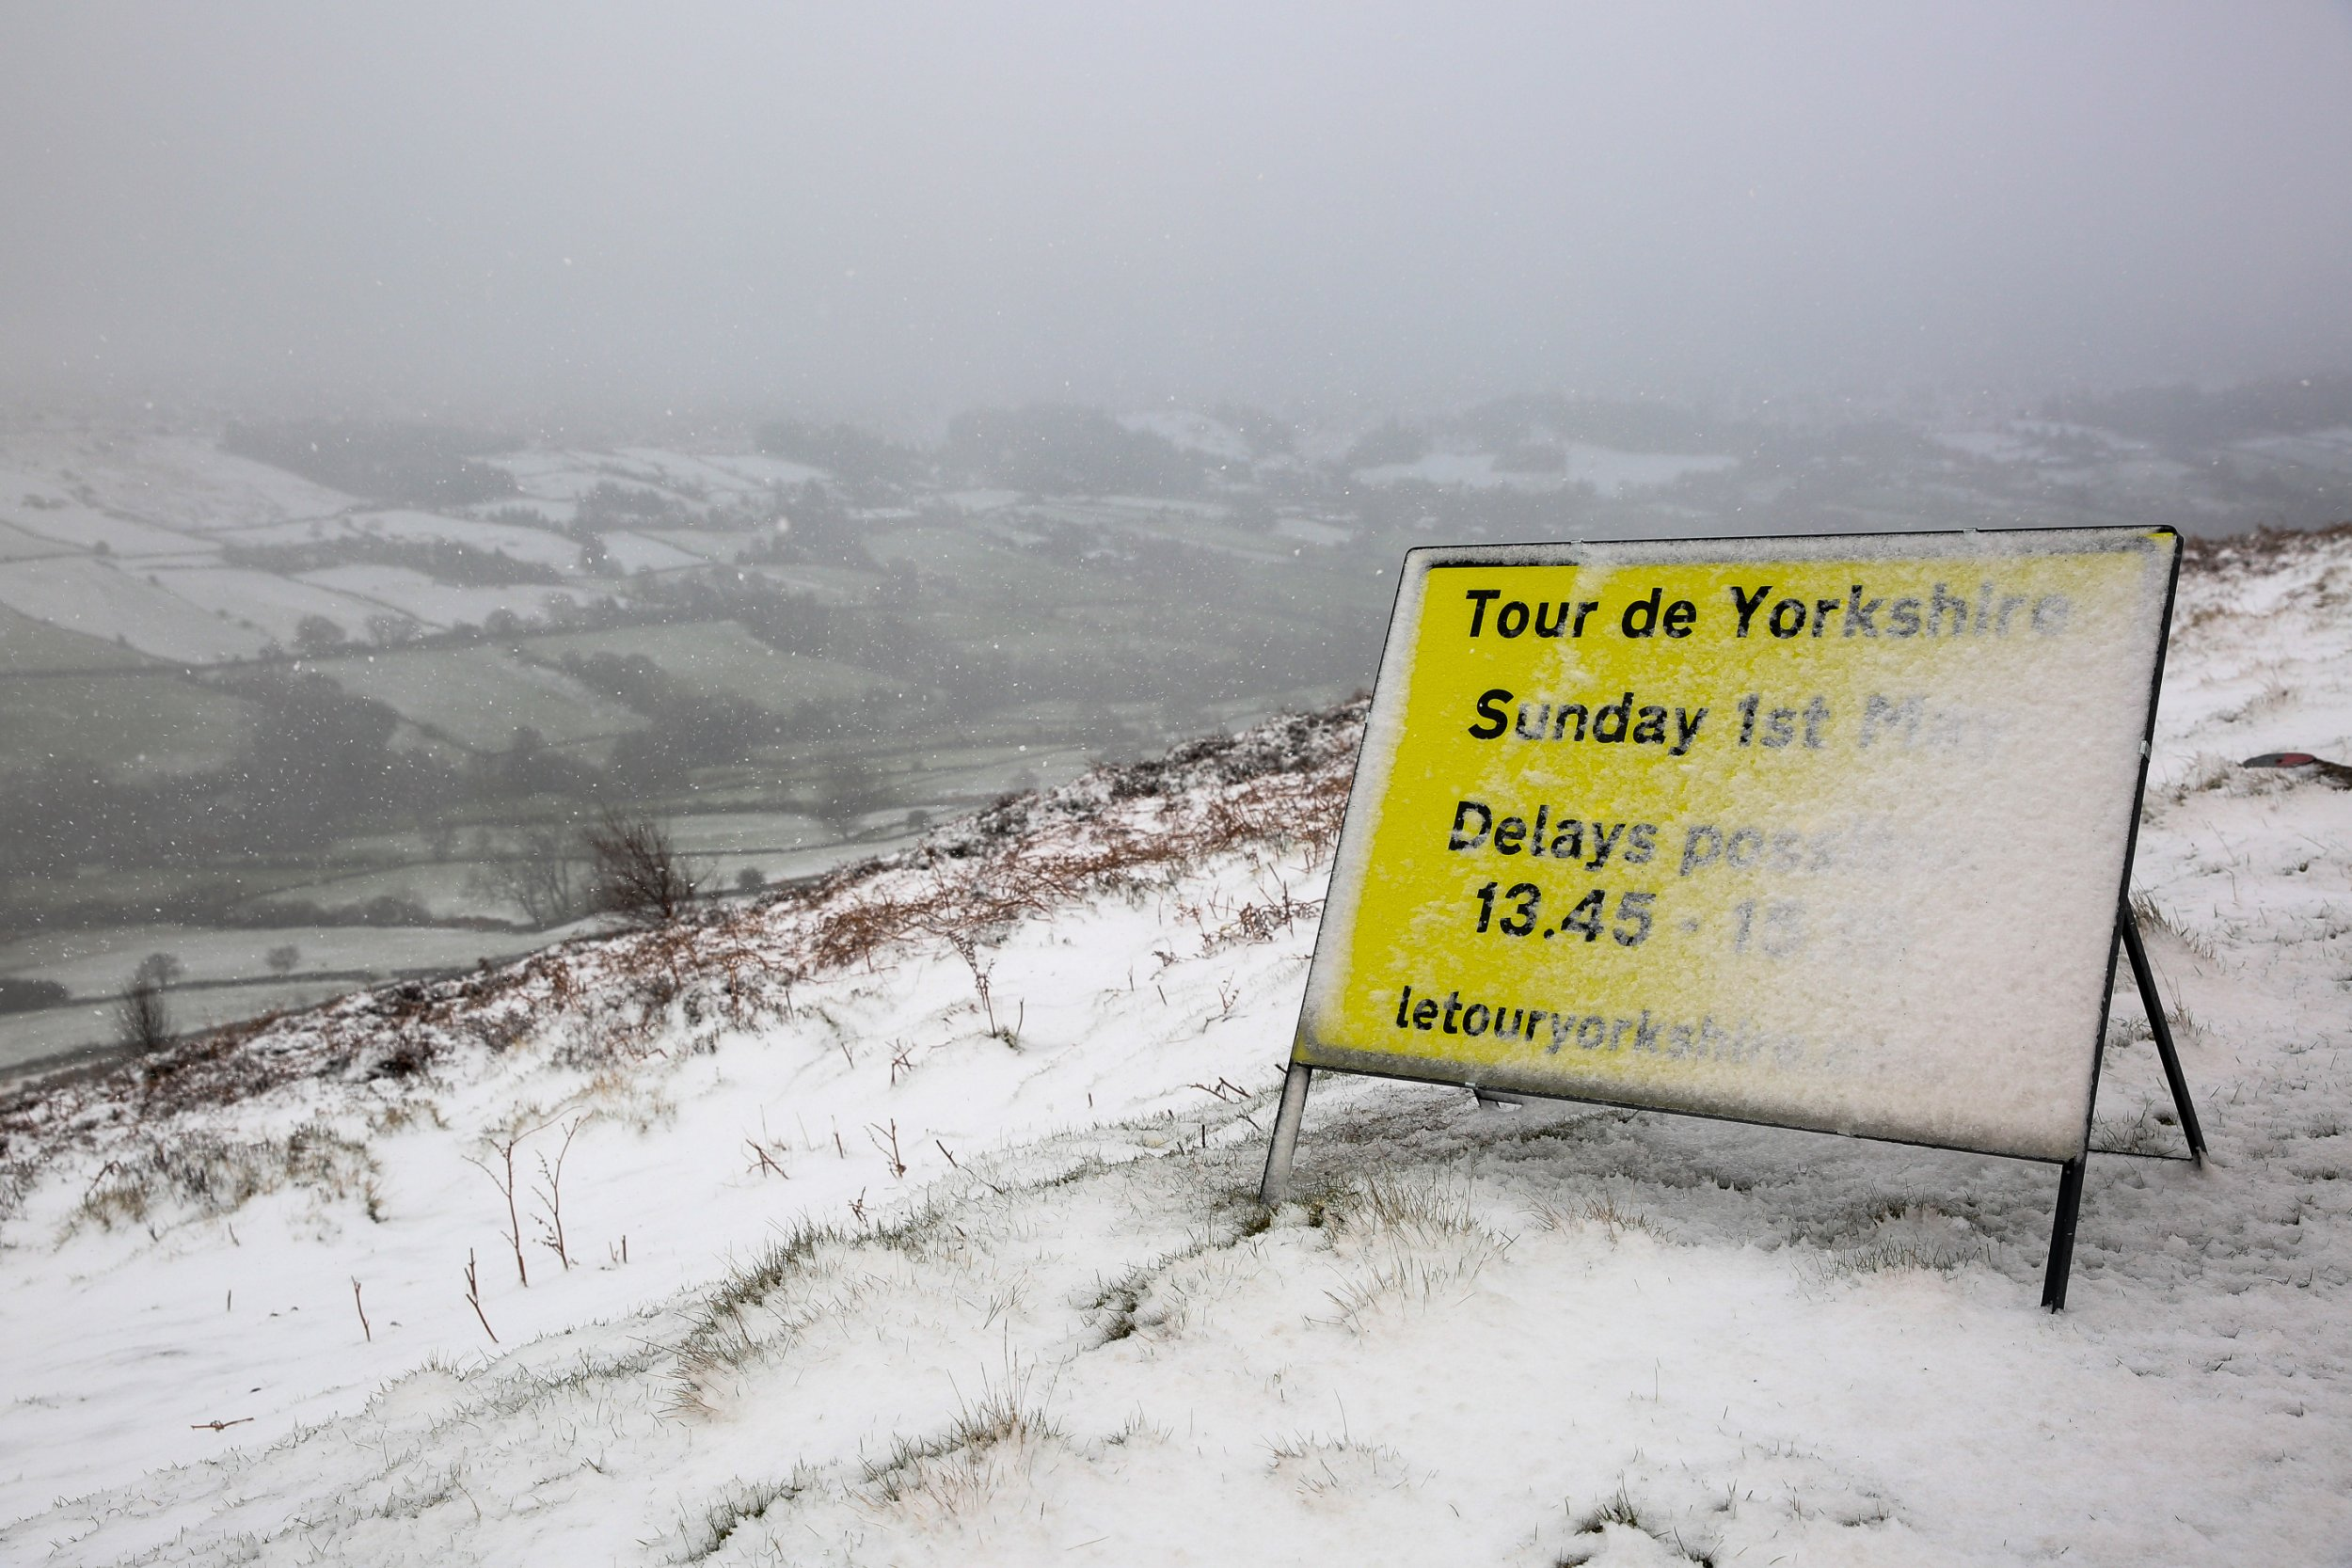 Tour de Yorkshire route covered in snow just THREE days ahead of event